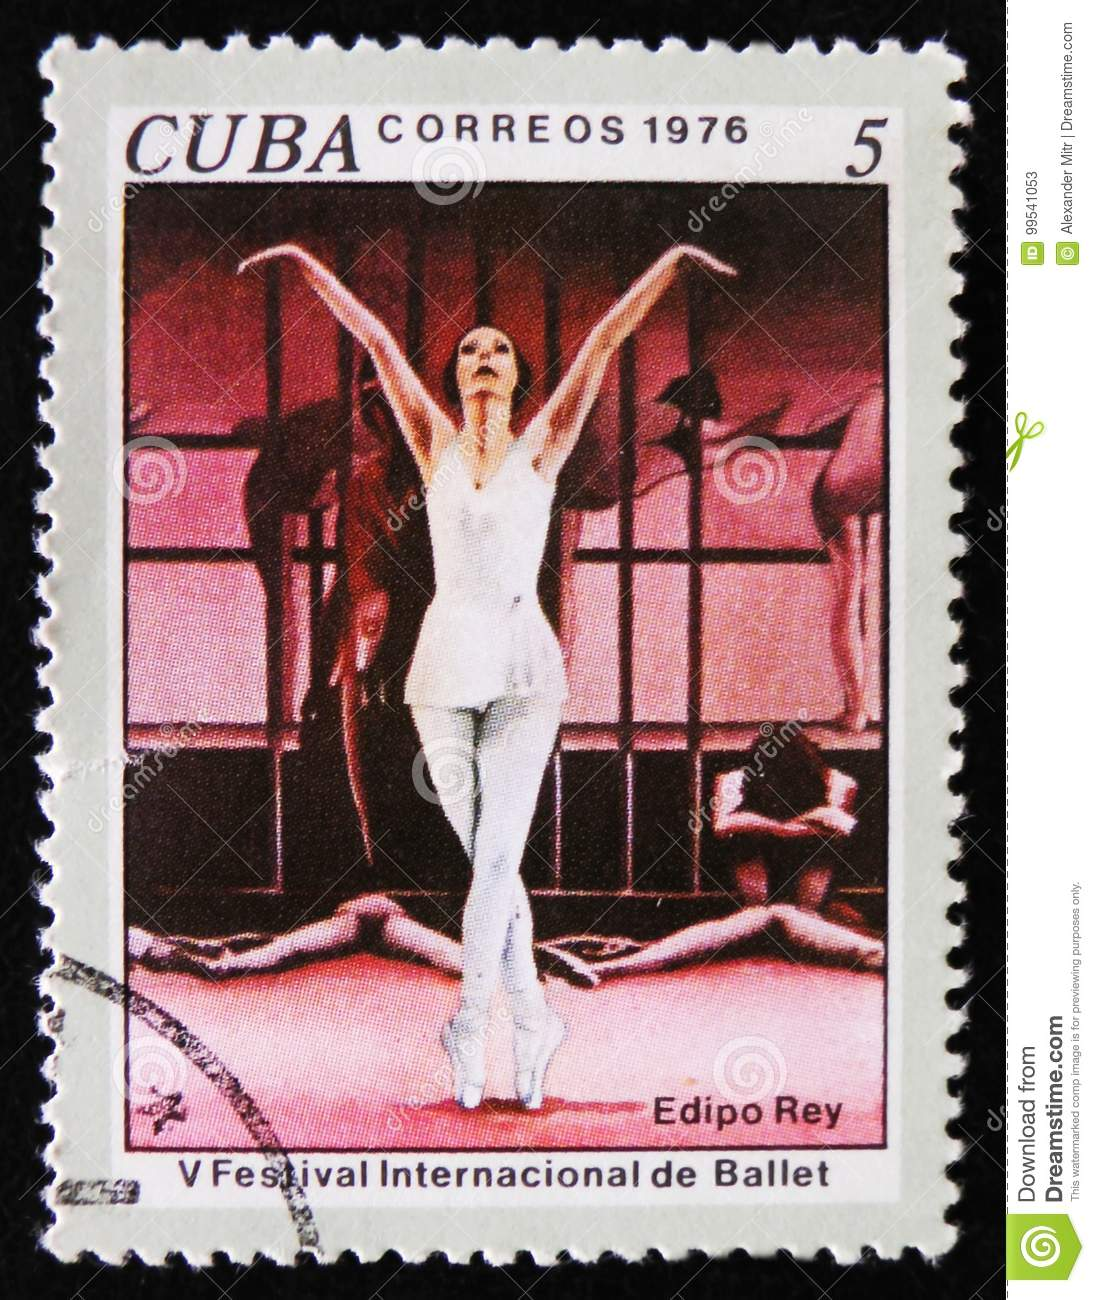 MOSCOW, RUSSIA - APRIL 2, 2017: A post stamp printed in Cuba shows Scene from Ballet Oedipus Rex, 5th International Ballet